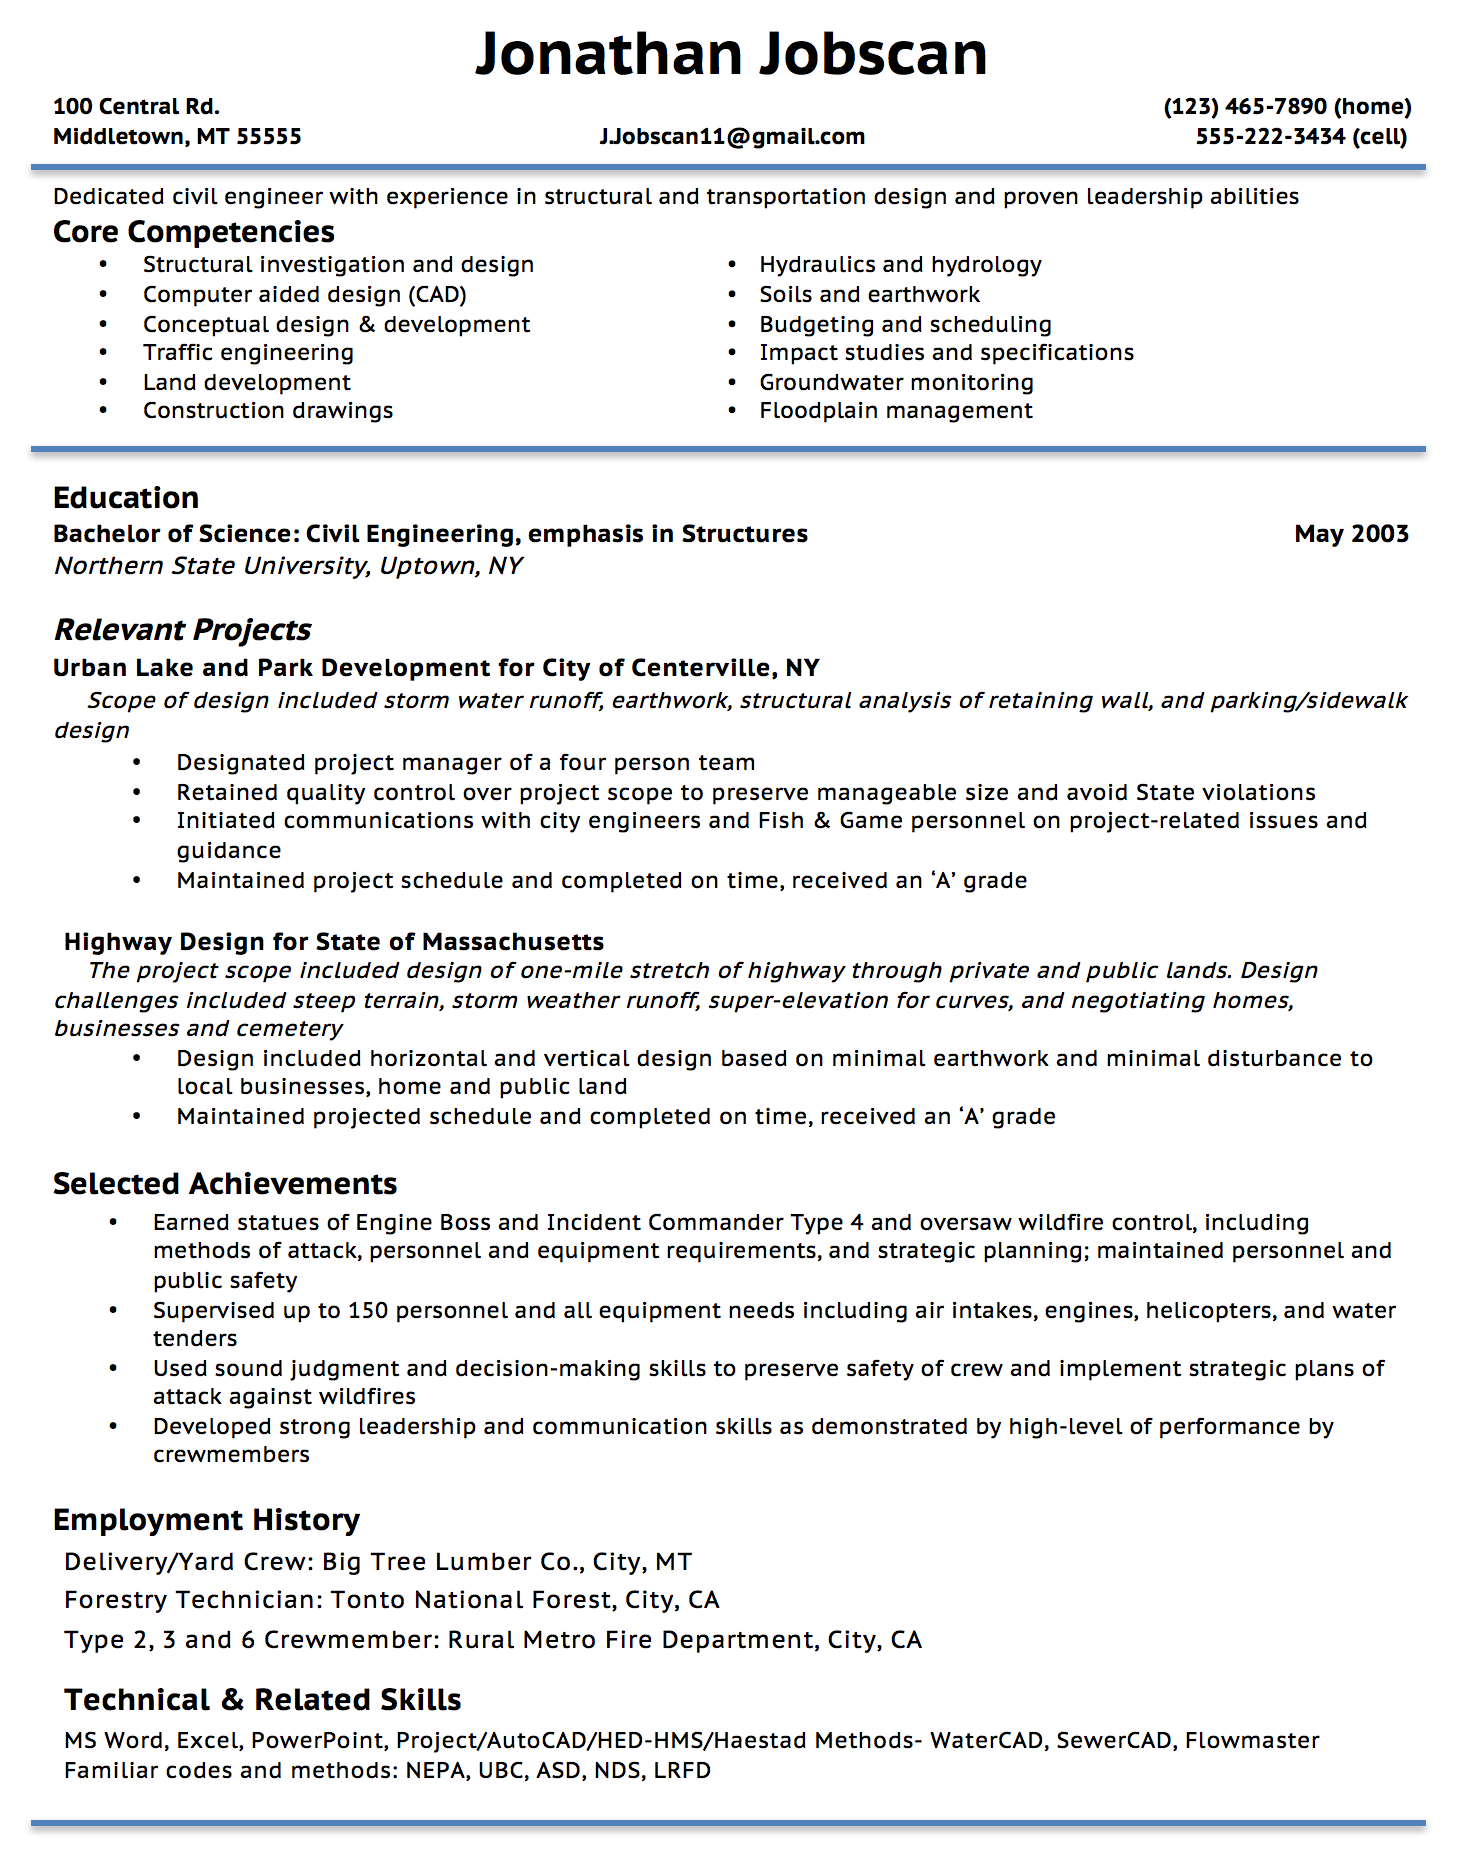 Opposenewapstandardsus  Fascinating Resume Writing Guide  Jobscan With Outstanding Example Of A Functional Resume Format With Easy On The Eye Is Resume Now Safe Also Resume Templates Office In Addition How To Become A Certified Resume Writer And Resume Education Section Example As Well As Strong Adjectives For Resume Additionally Wound Care Nurse Resume From Jobscanco With Opposenewapstandardsus  Outstanding Resume Writing Guide  Jobscan With Easy On The Eye Example Of A Functional Resume Format And Fascinating Is Resume Now Safe Also Resume Templates Office In Addition How To Become A Certified Resume Writer From Jobscanco